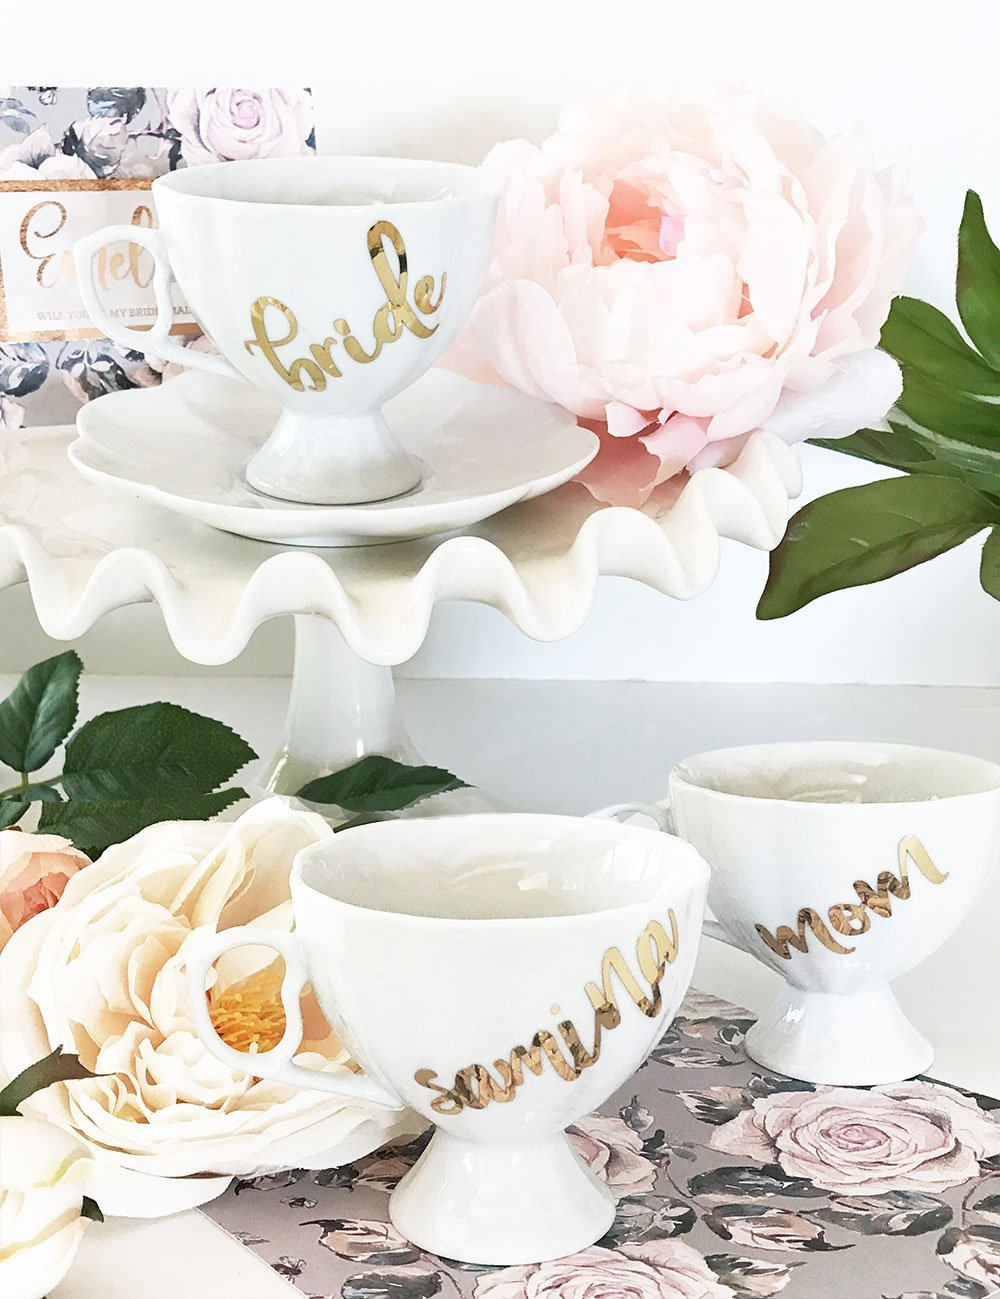 Bride Savvy LLC -Your Bride Box Personalized Porcelin Teacup & Saucer